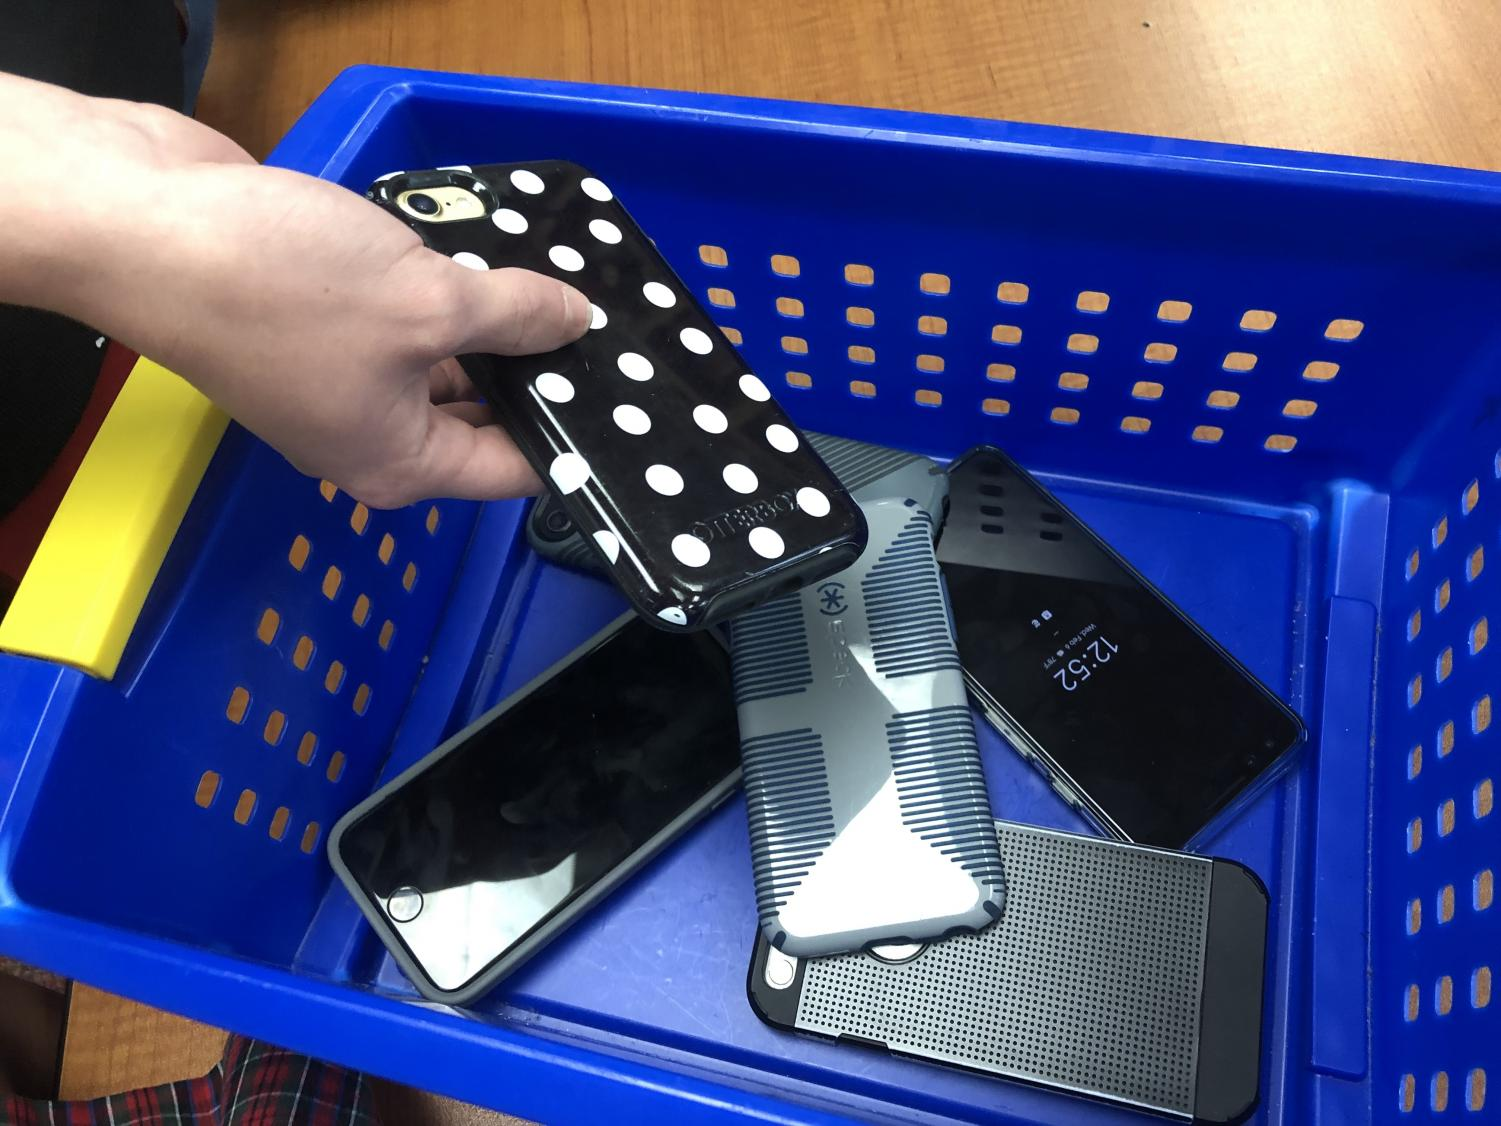 Students placing their phones in a collection box before class.